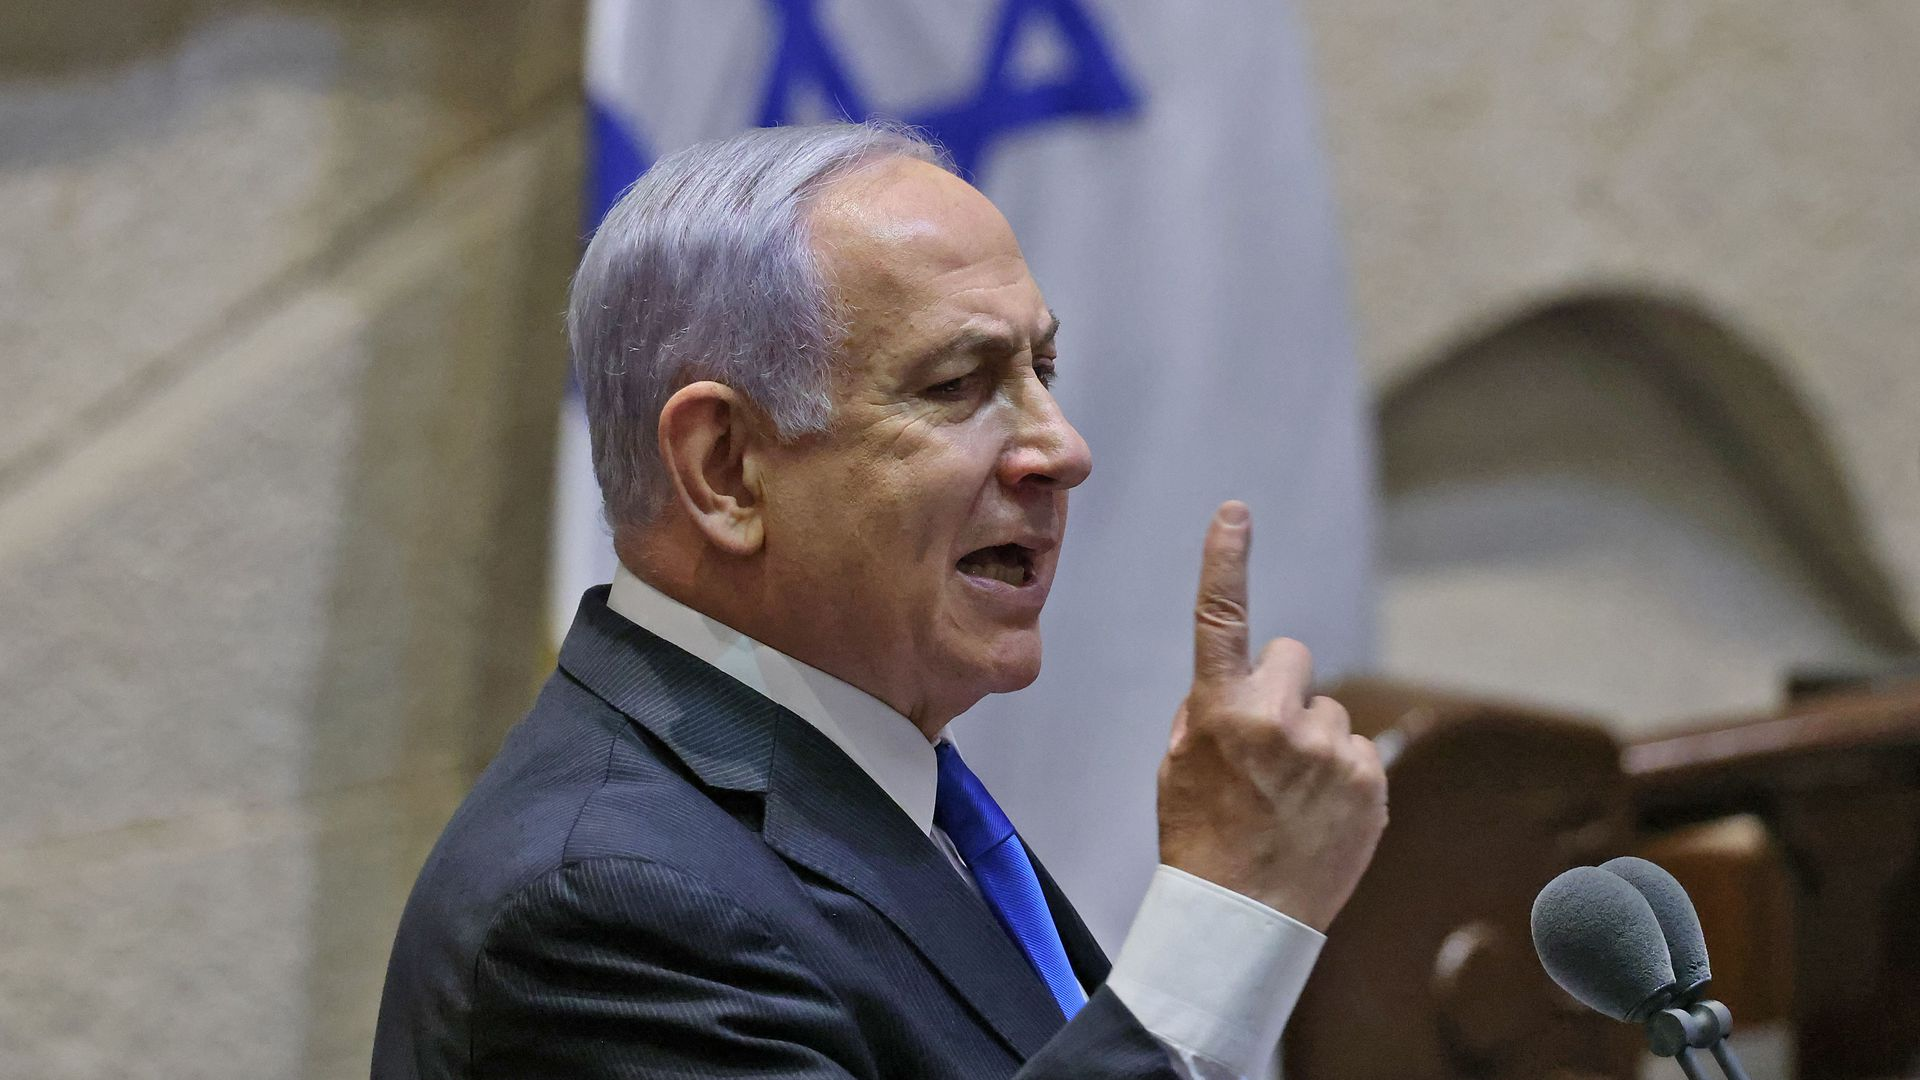 Netanyahu uses last speech as prime minister to attack Biden on Iran - Axios